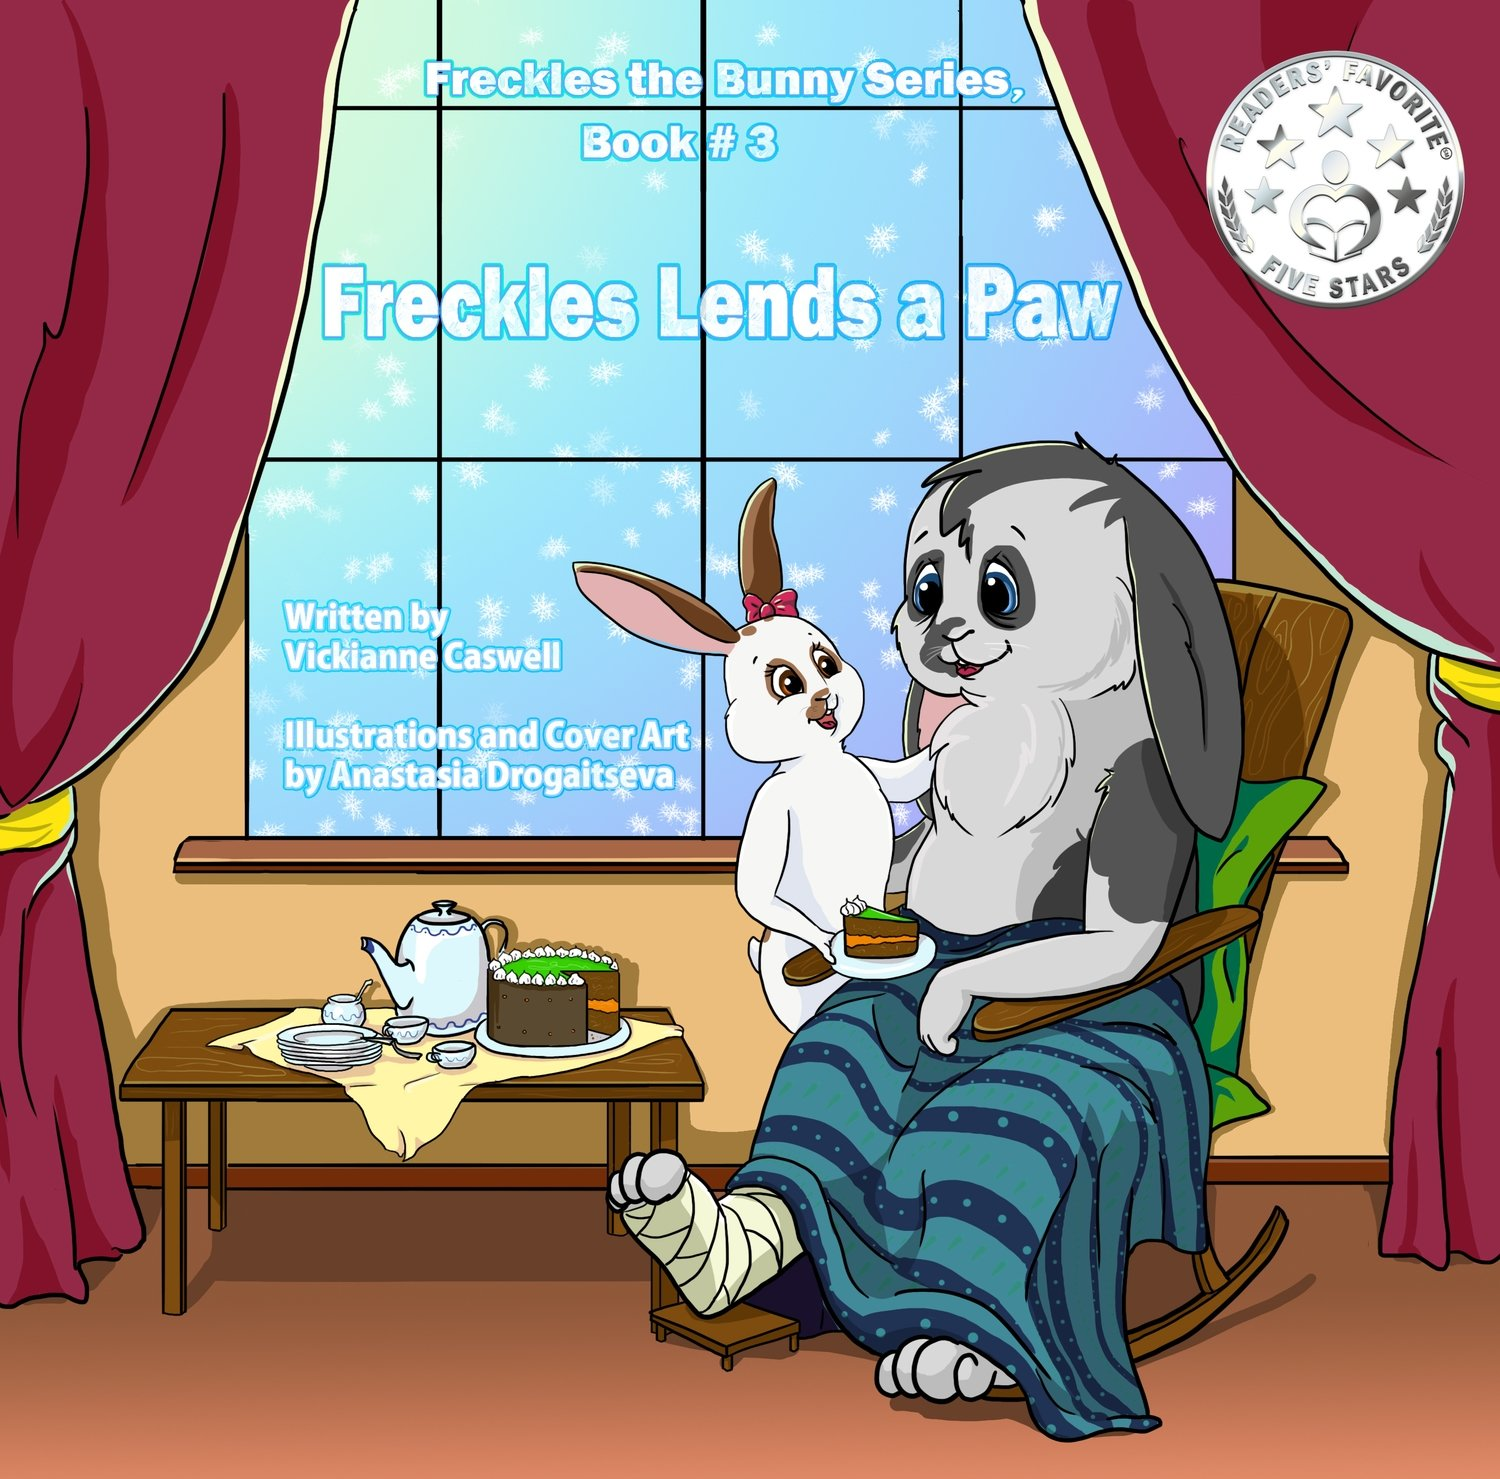 Freckles Lends a Paw EPUB (Freckles the Bunny Series # 3)